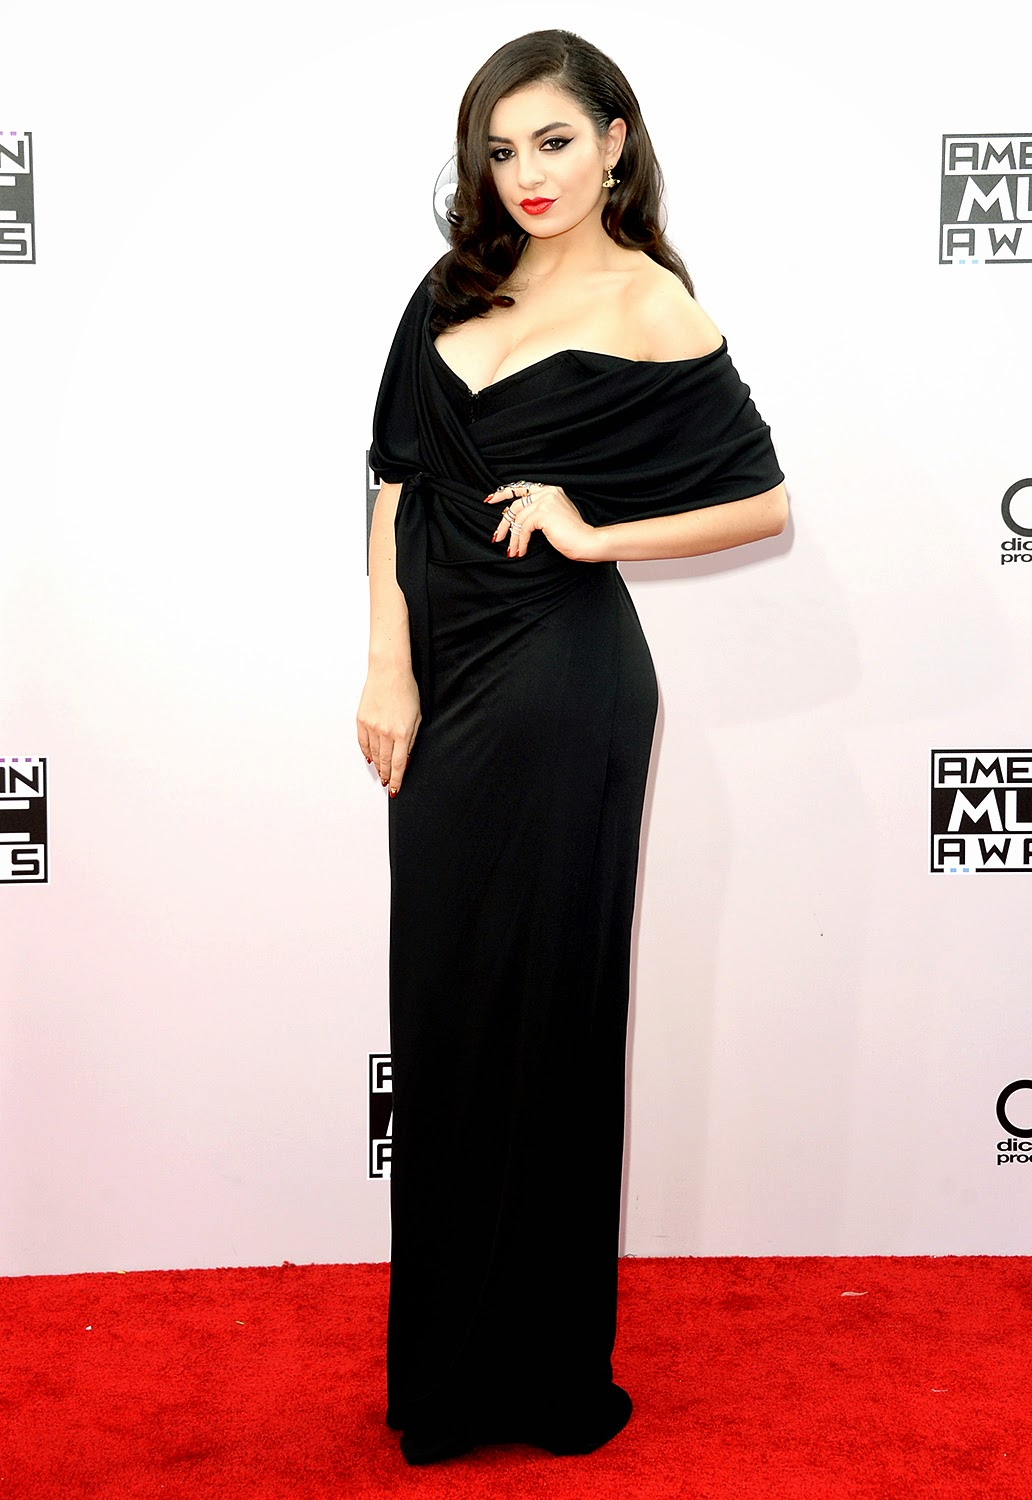 Charli XCX - 2014 American Music Awards - Red Carpet